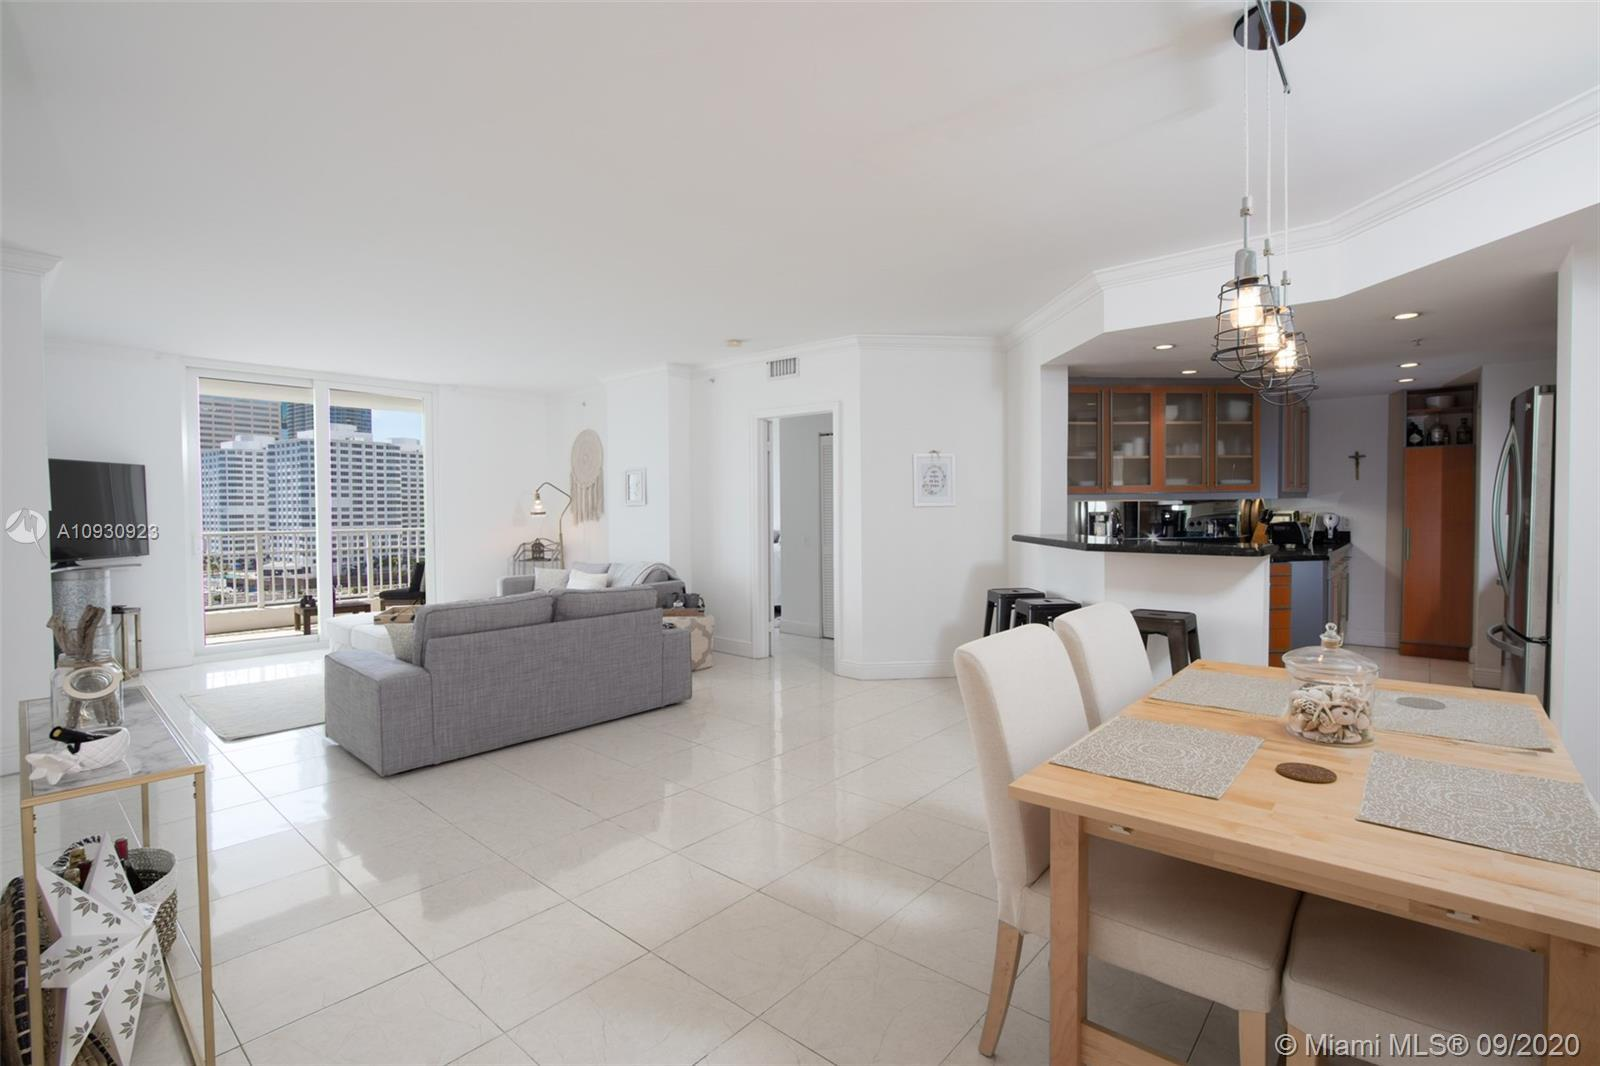 AMAZING, DIRECT BAY VIEWS FROM THIS UPDATED & BEAUTIFULLY DECORATED 2 BEDROOM 2.5 BATH WITH IMPACT W